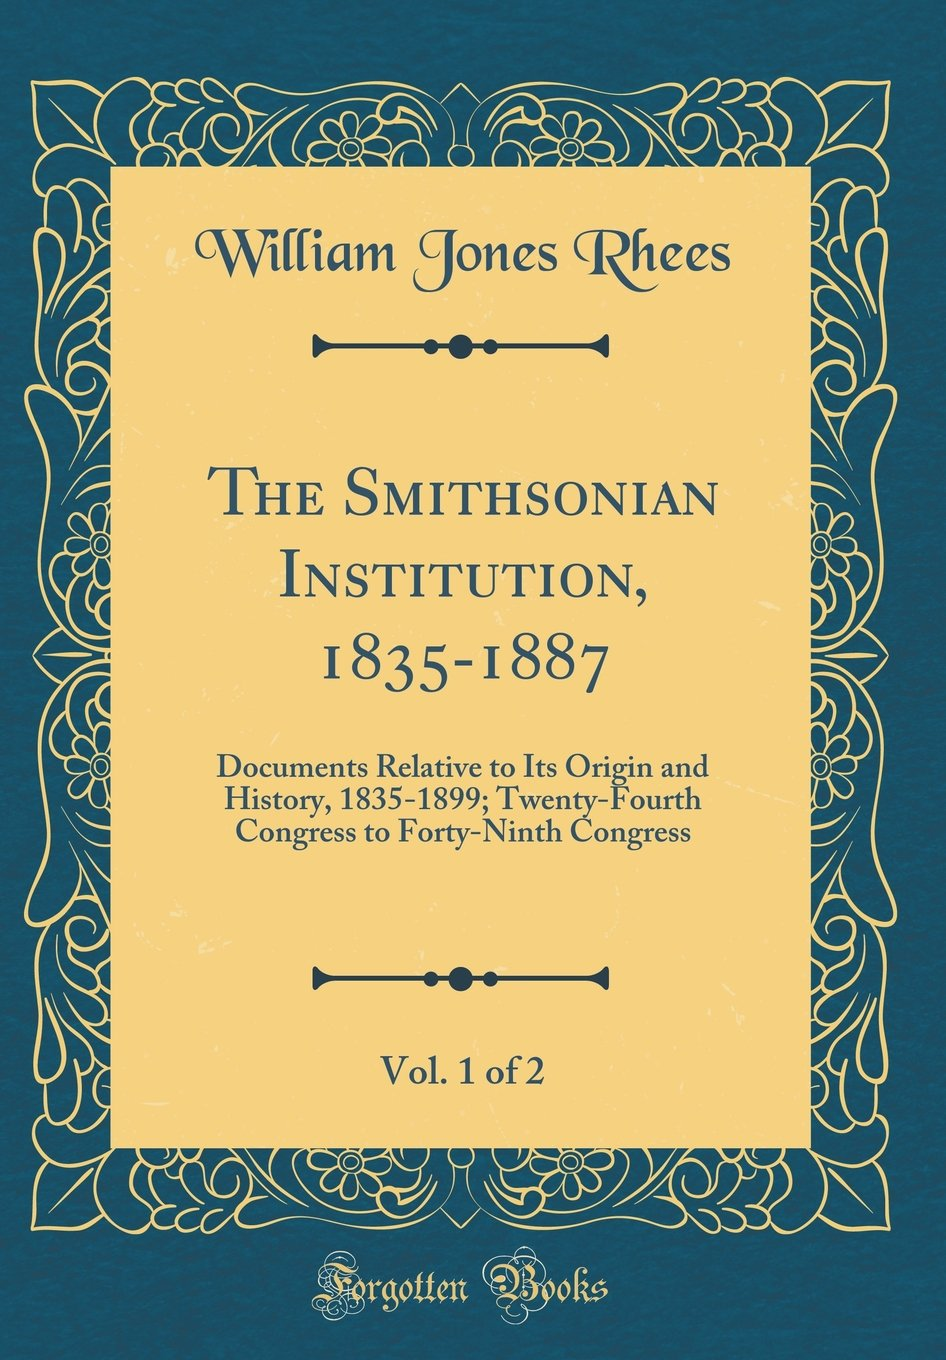 The Smithsonian Institution, 1835-1887, Vol. 1 of 2: Documents Relative to Its Origin and History, 1835-1899; Twenty-Fourth Congress to Forty-Ninth Congress (Classic Reprint) Text fb2 ebook